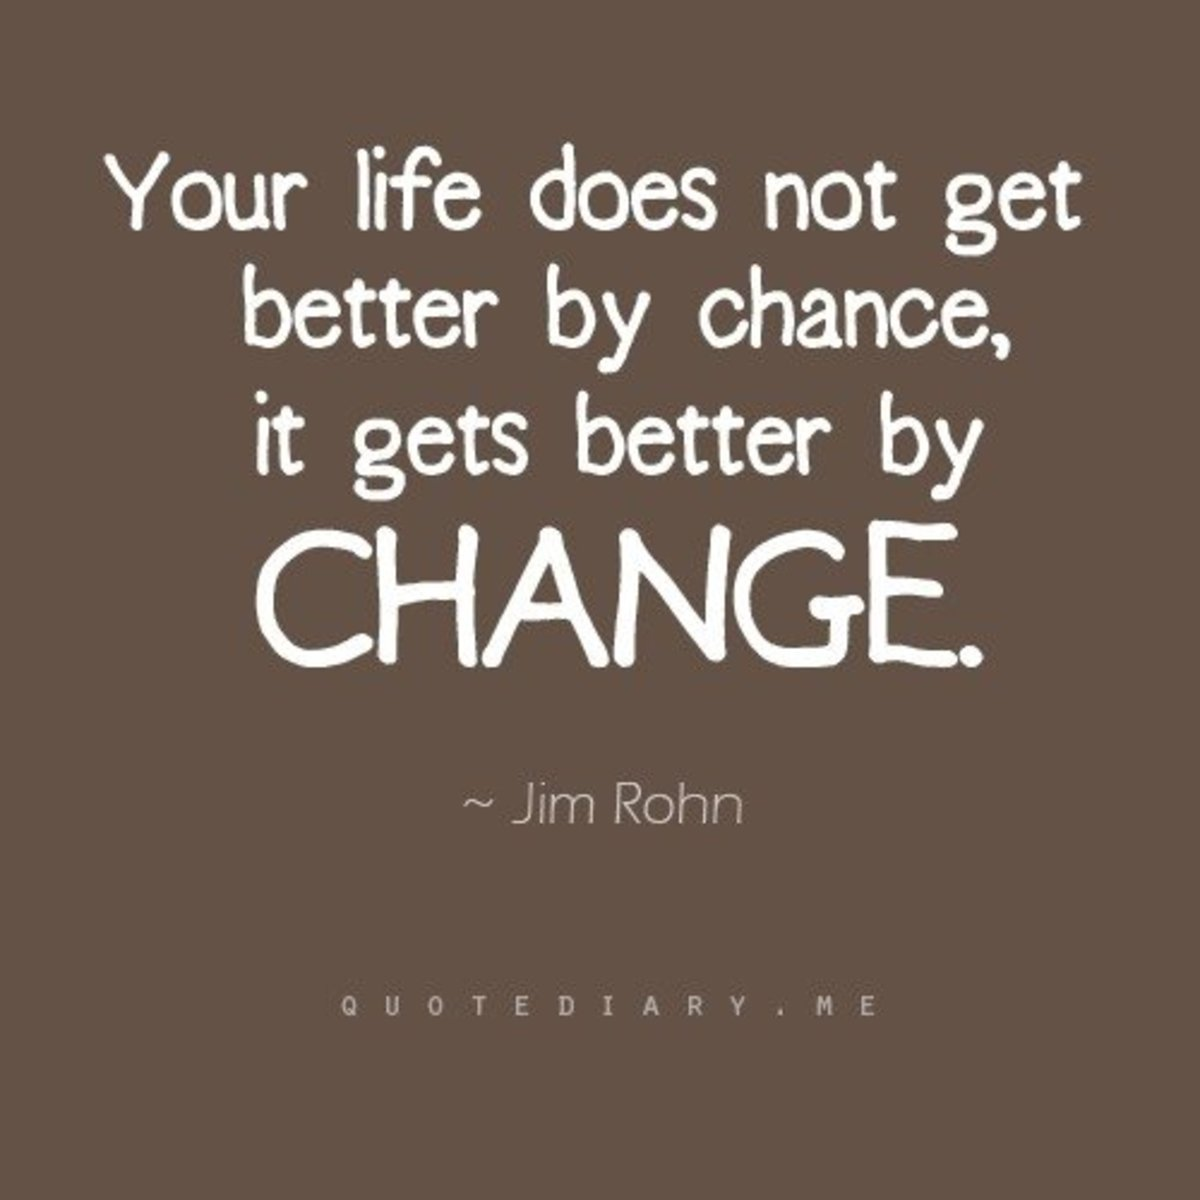 Change is good think positively